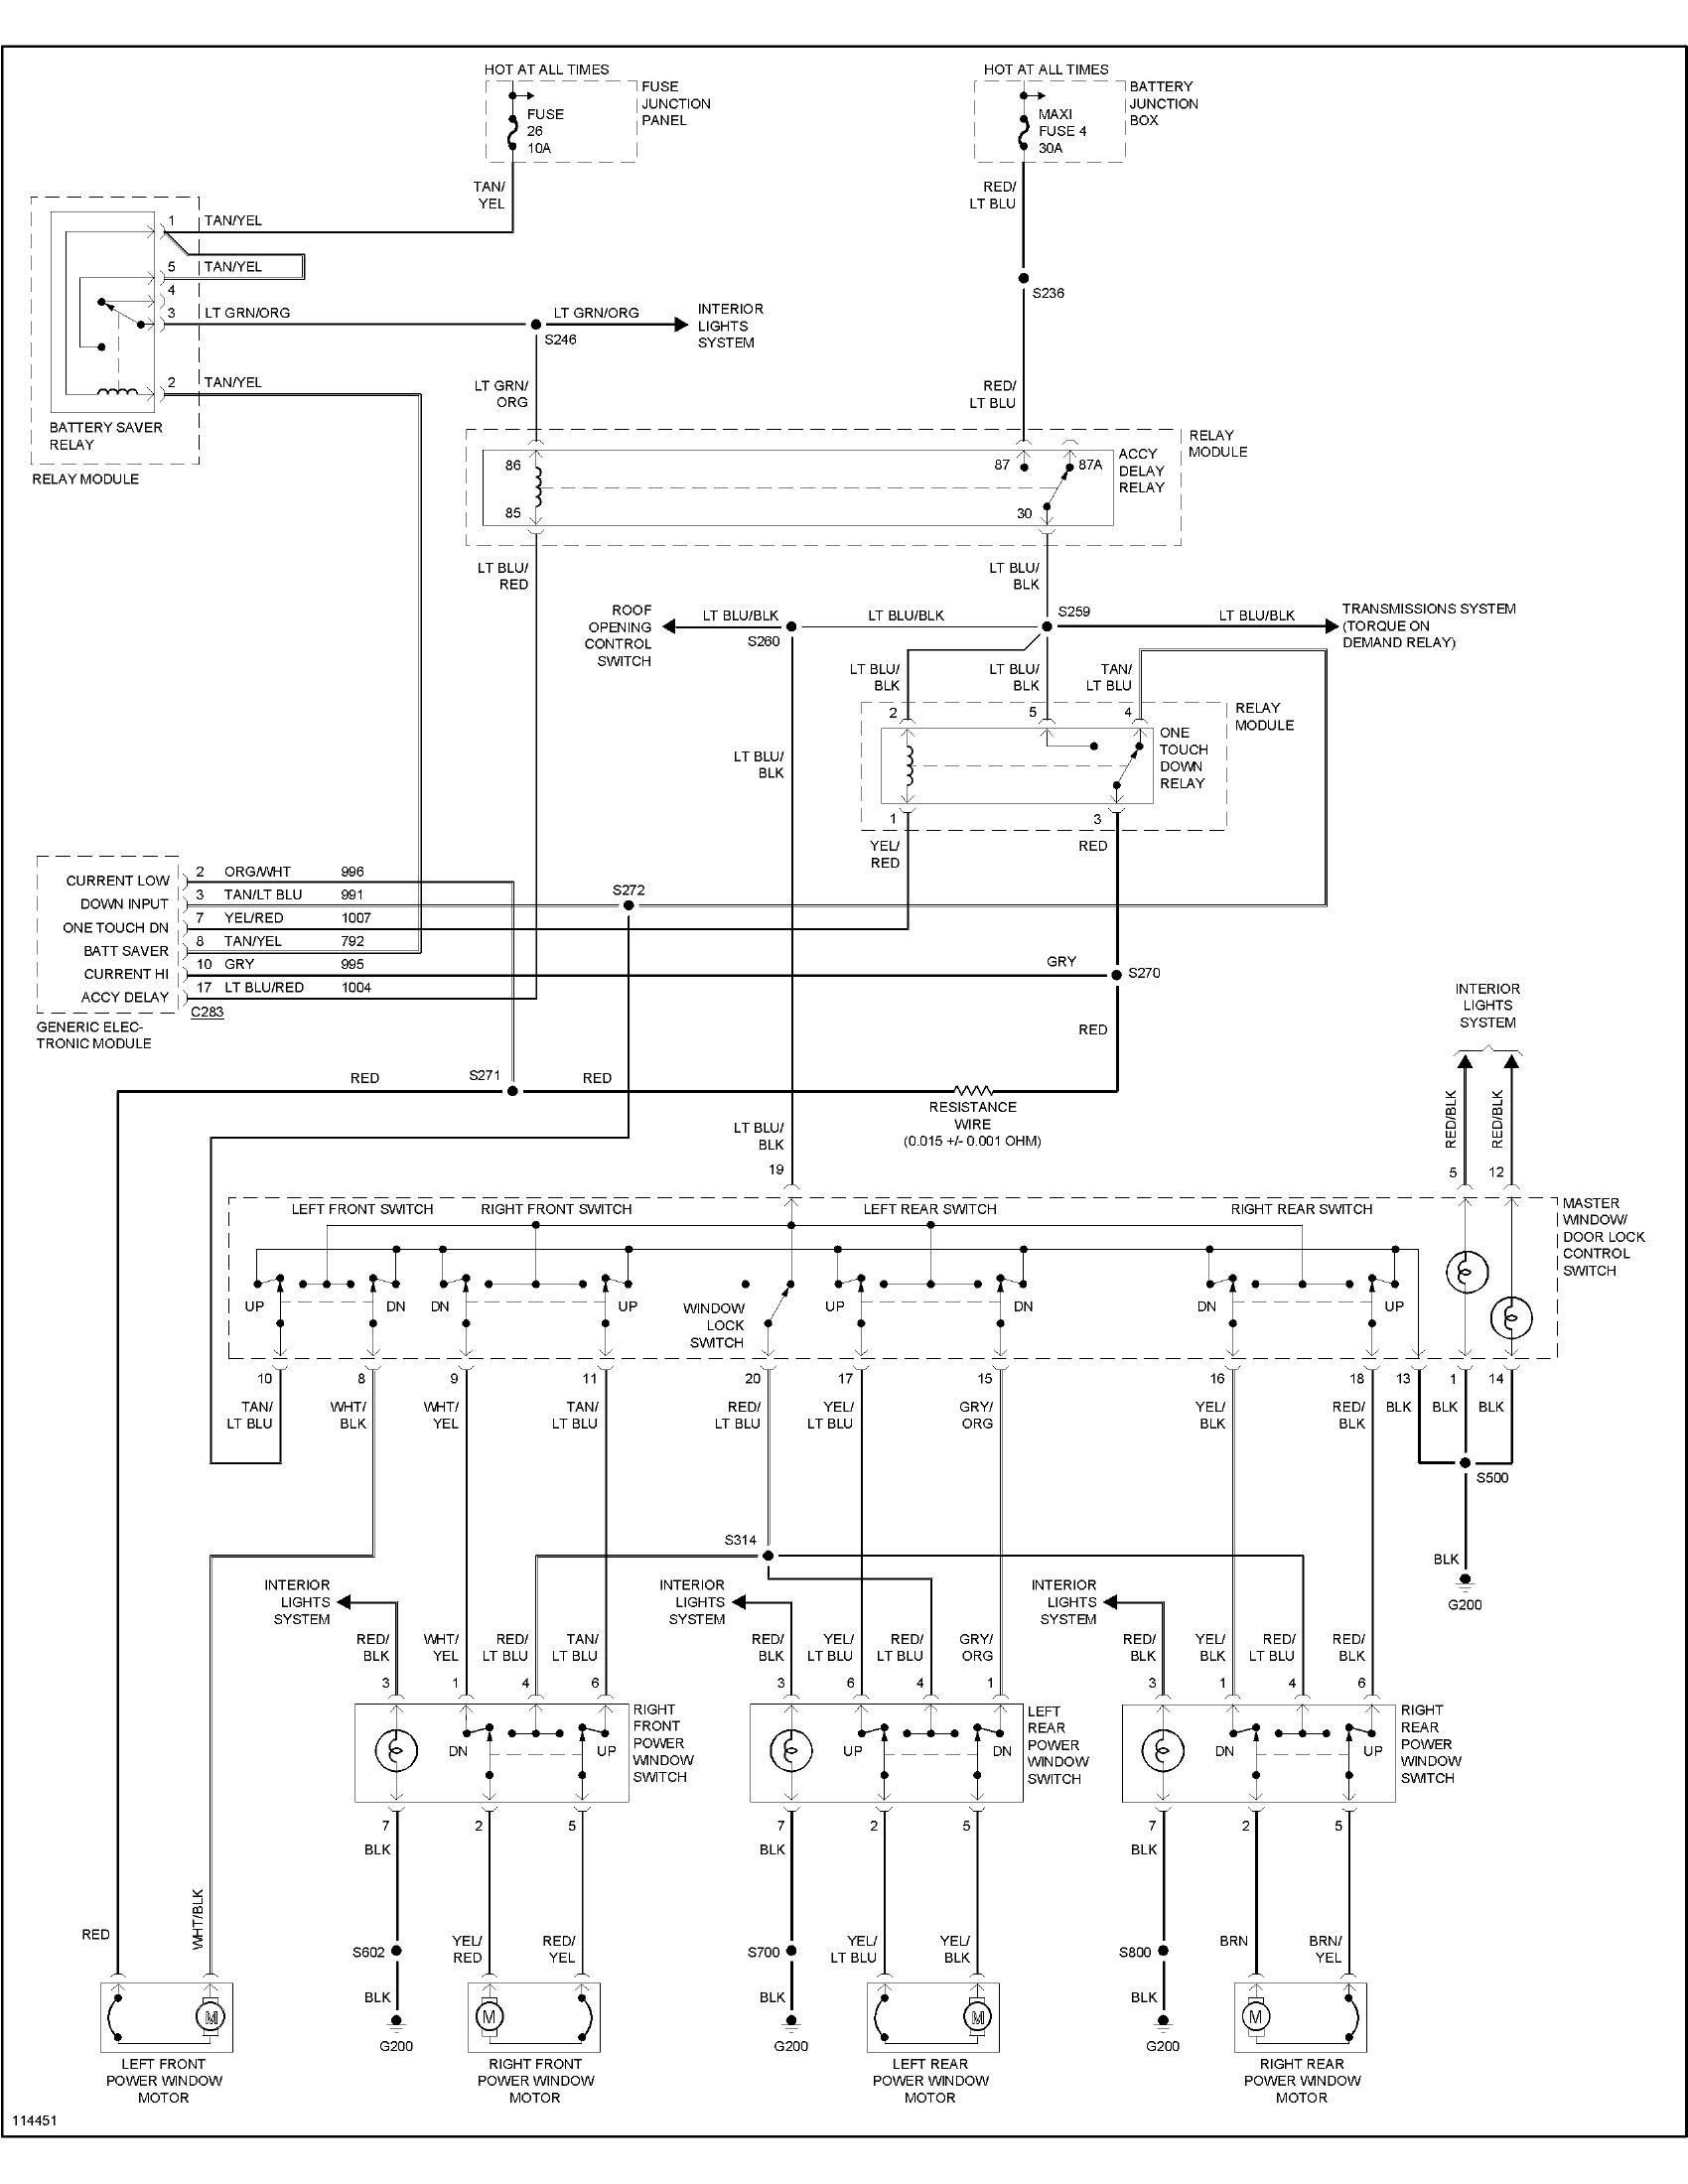 2005 Ford Explorer Ac Wiring Wiring Diagram 2005 Ford 500 Fuse Box Diagram  Ford Explorer Fuse Box Diagram 2005